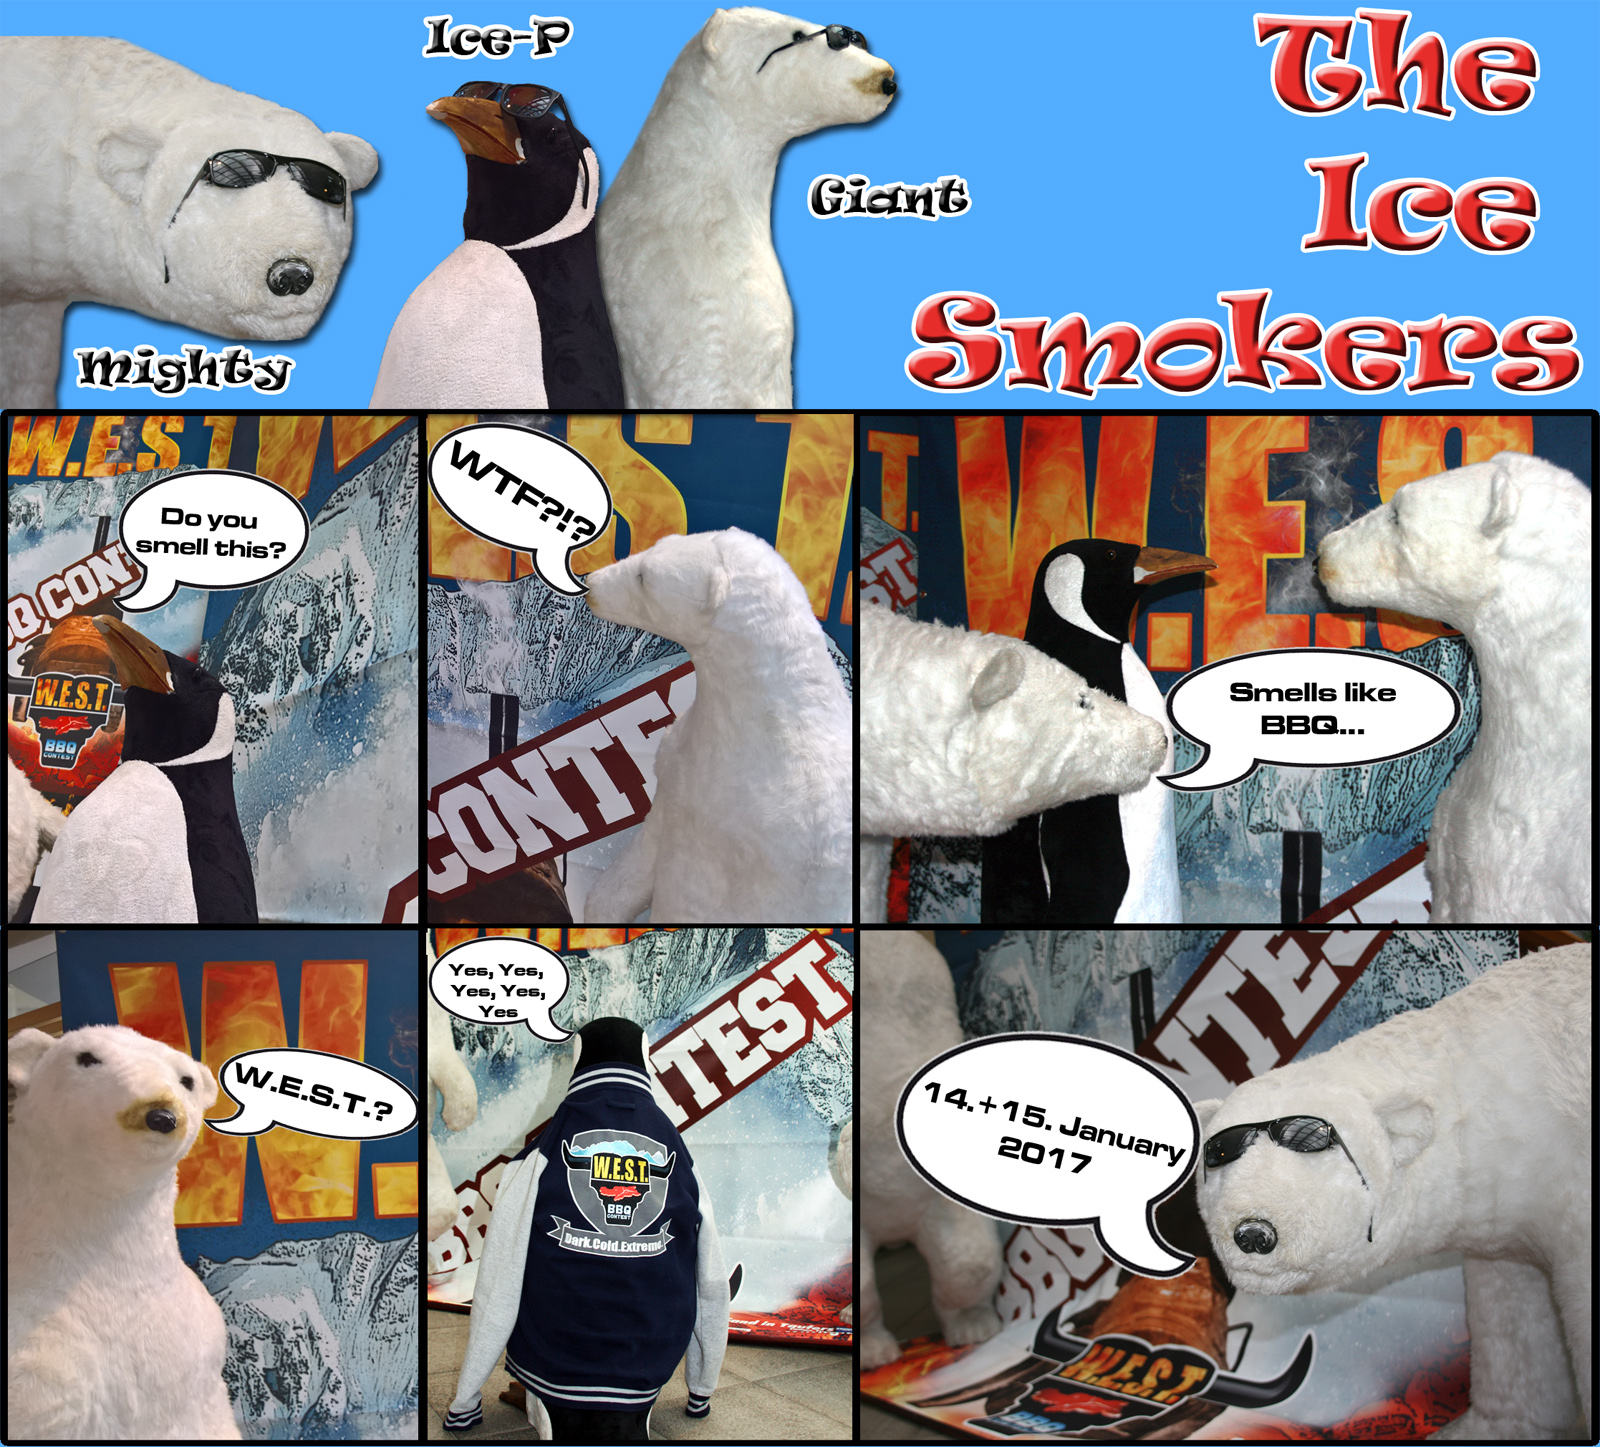 The Ice Smokers